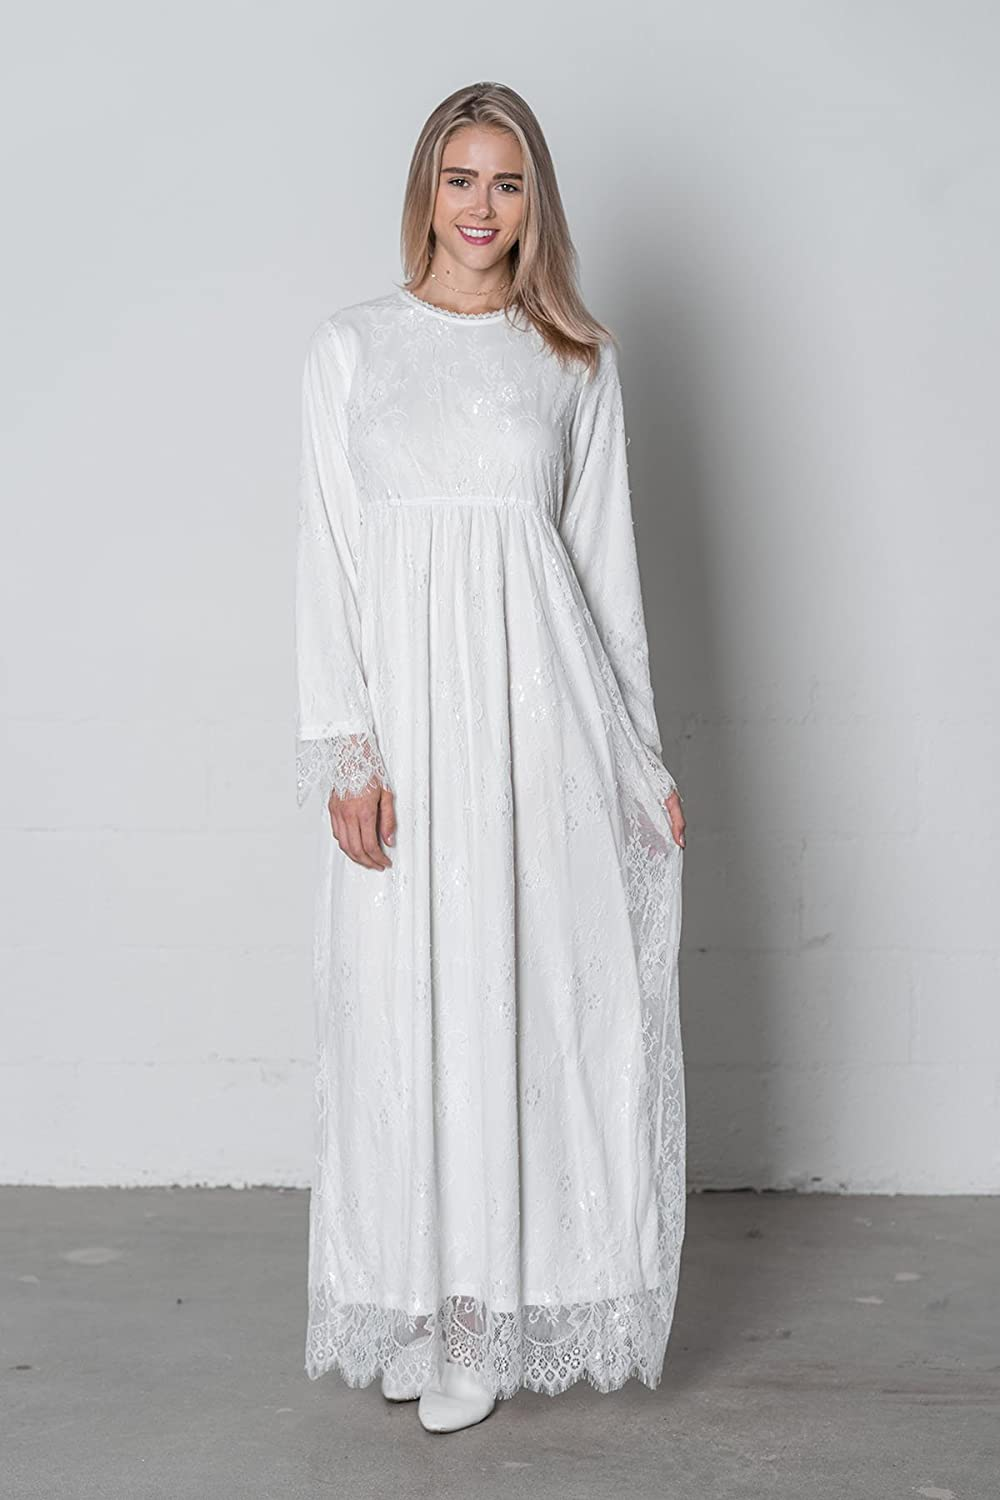 1900-1910s Clothing ModWhite White Jasmine Dress $74.00 AT vintagedancer.com